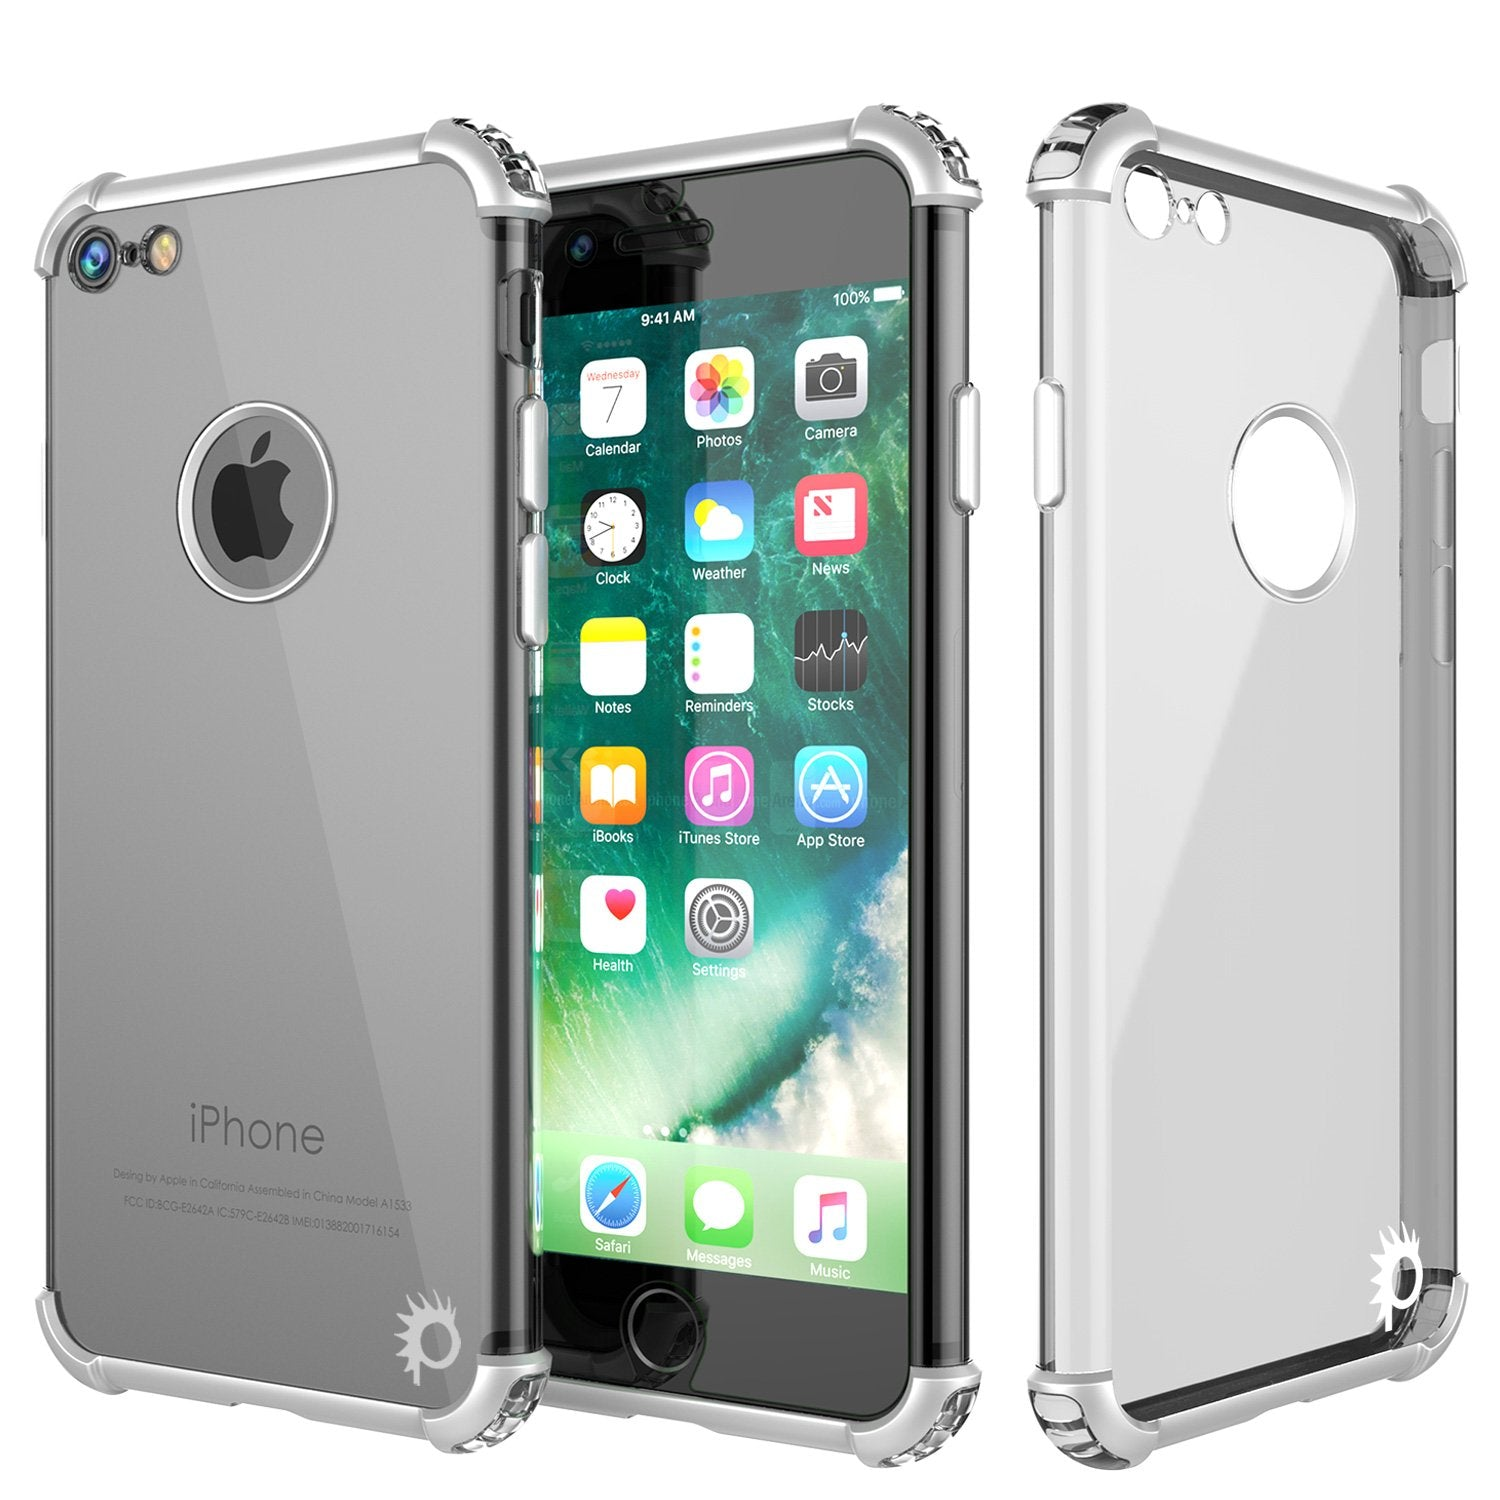 iPhone 7 Case, Punkcase [BLAZE SERIES] Protective Cover W/ PunkShield Screen Protector [Shockproof] [Slim Fit] for Apple iPhone